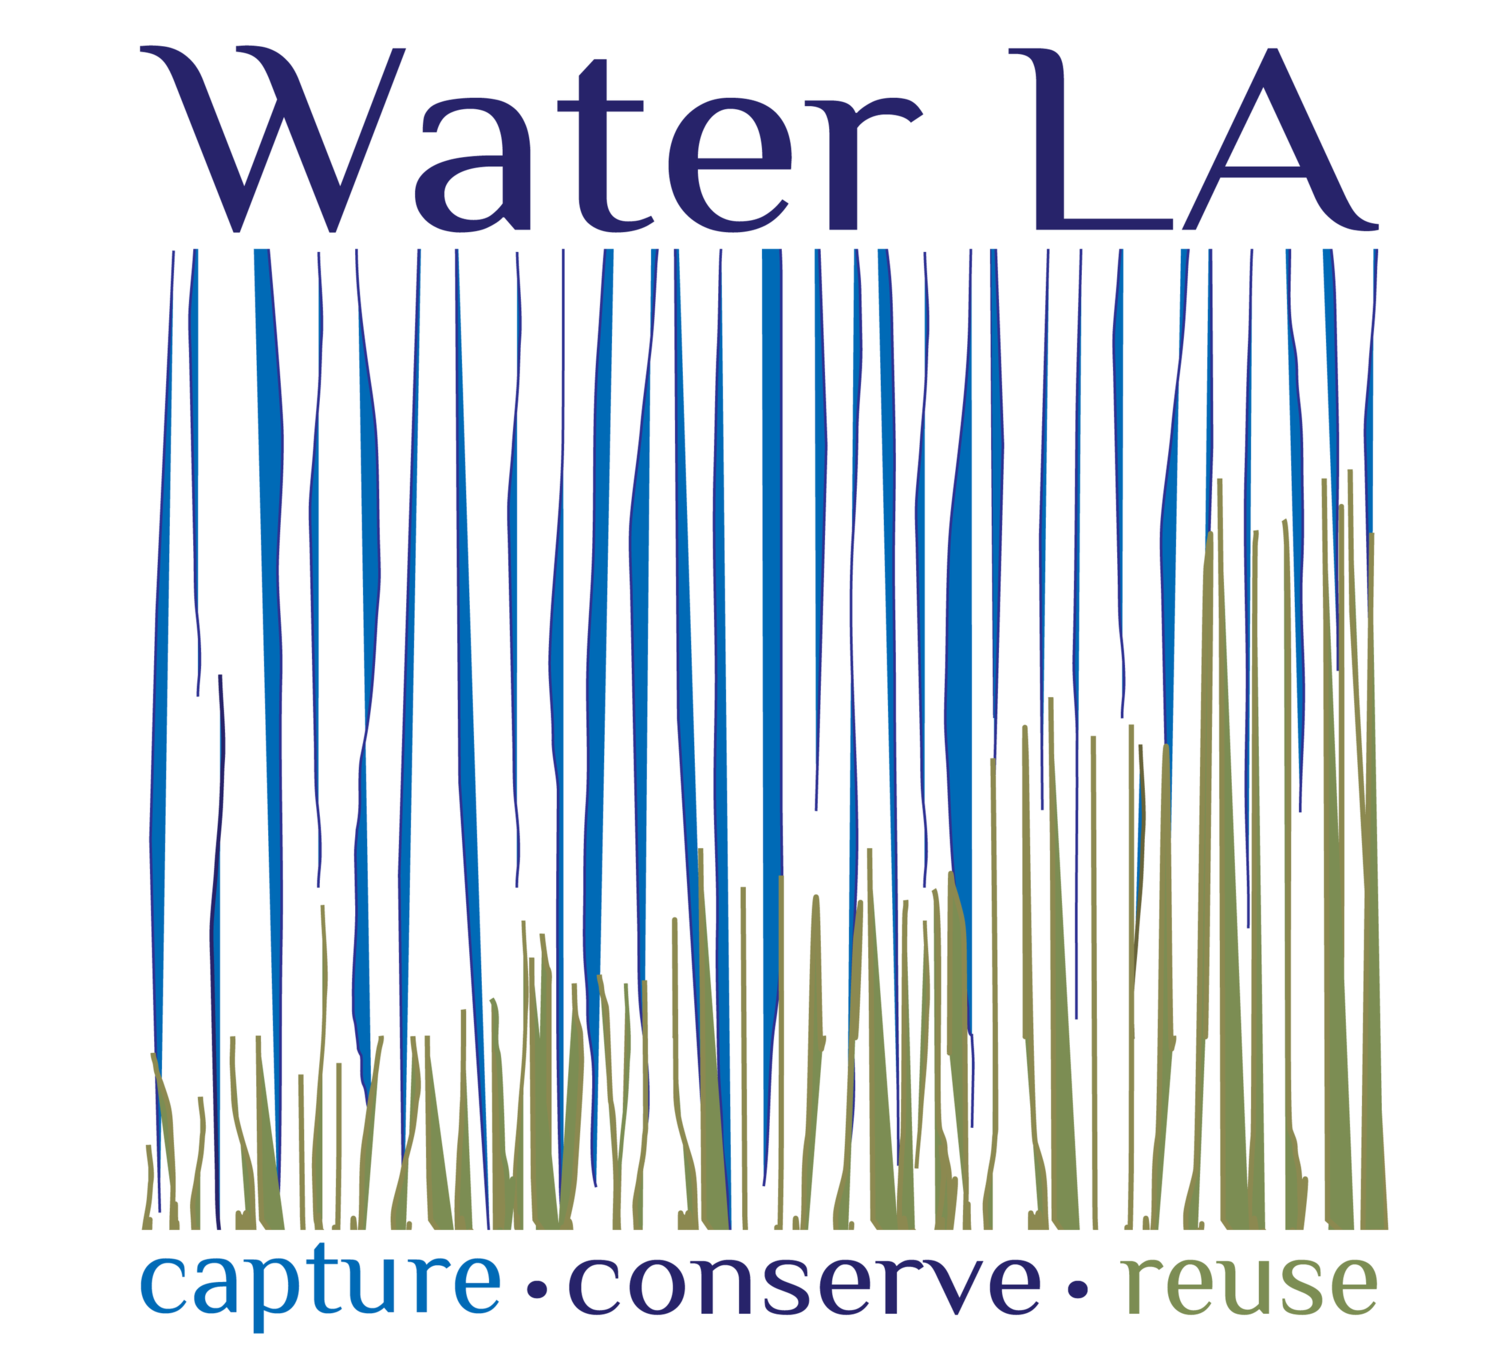 Urban acupuncture water la featured vasquez home brooks home fernandez home transform join a pilot join a pilot faq join a pilot interest form attend a workshop do it yourself solutioingenieria Images